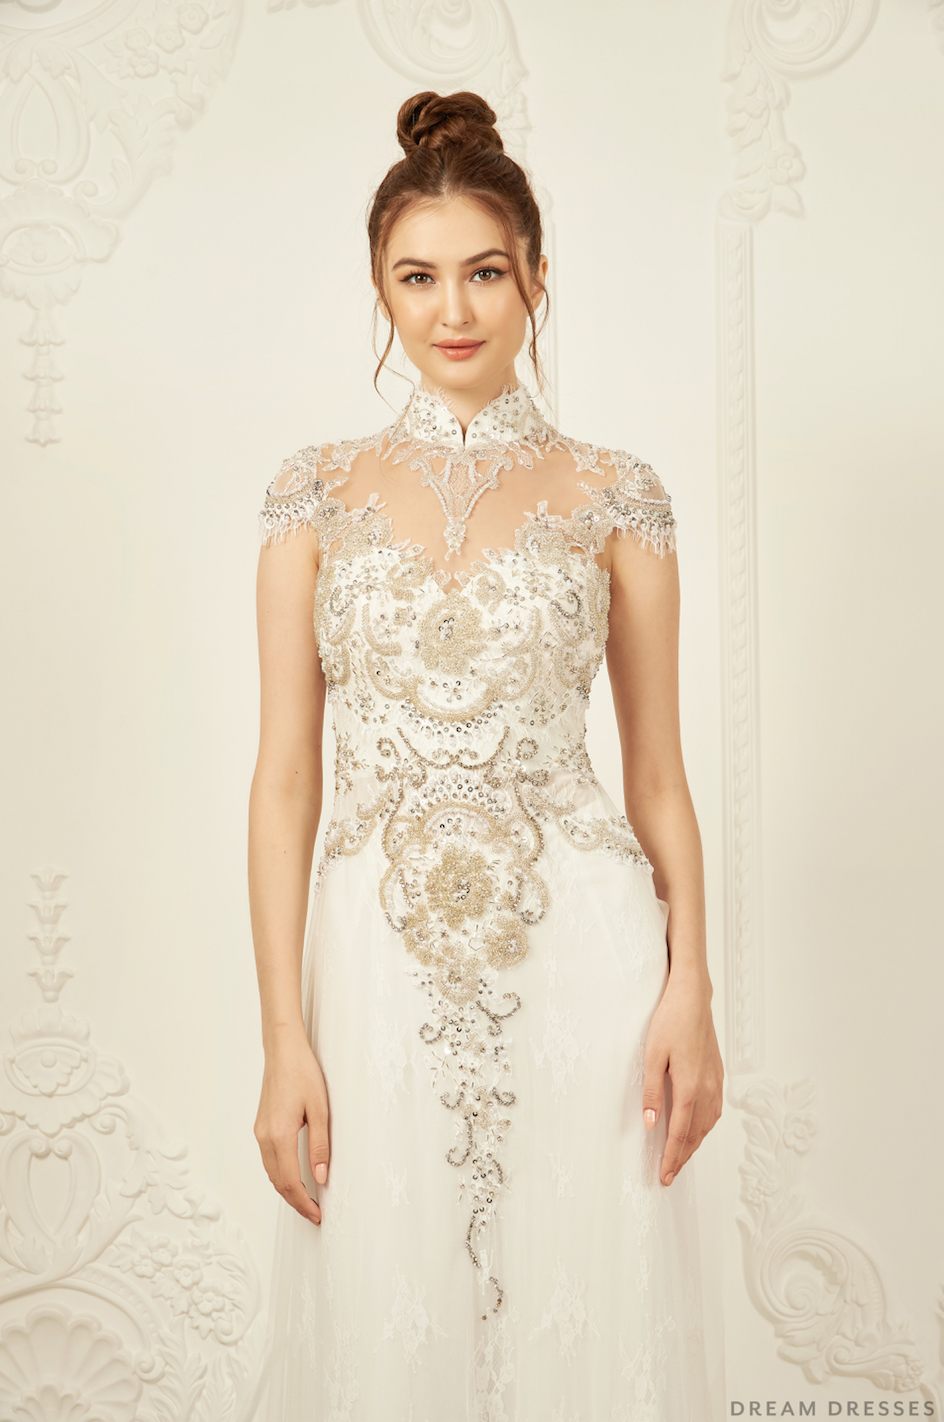 White Bridal Ao Dai | Modern Vietnamese Bridal Dress with Embellishments (#ANTHEA)